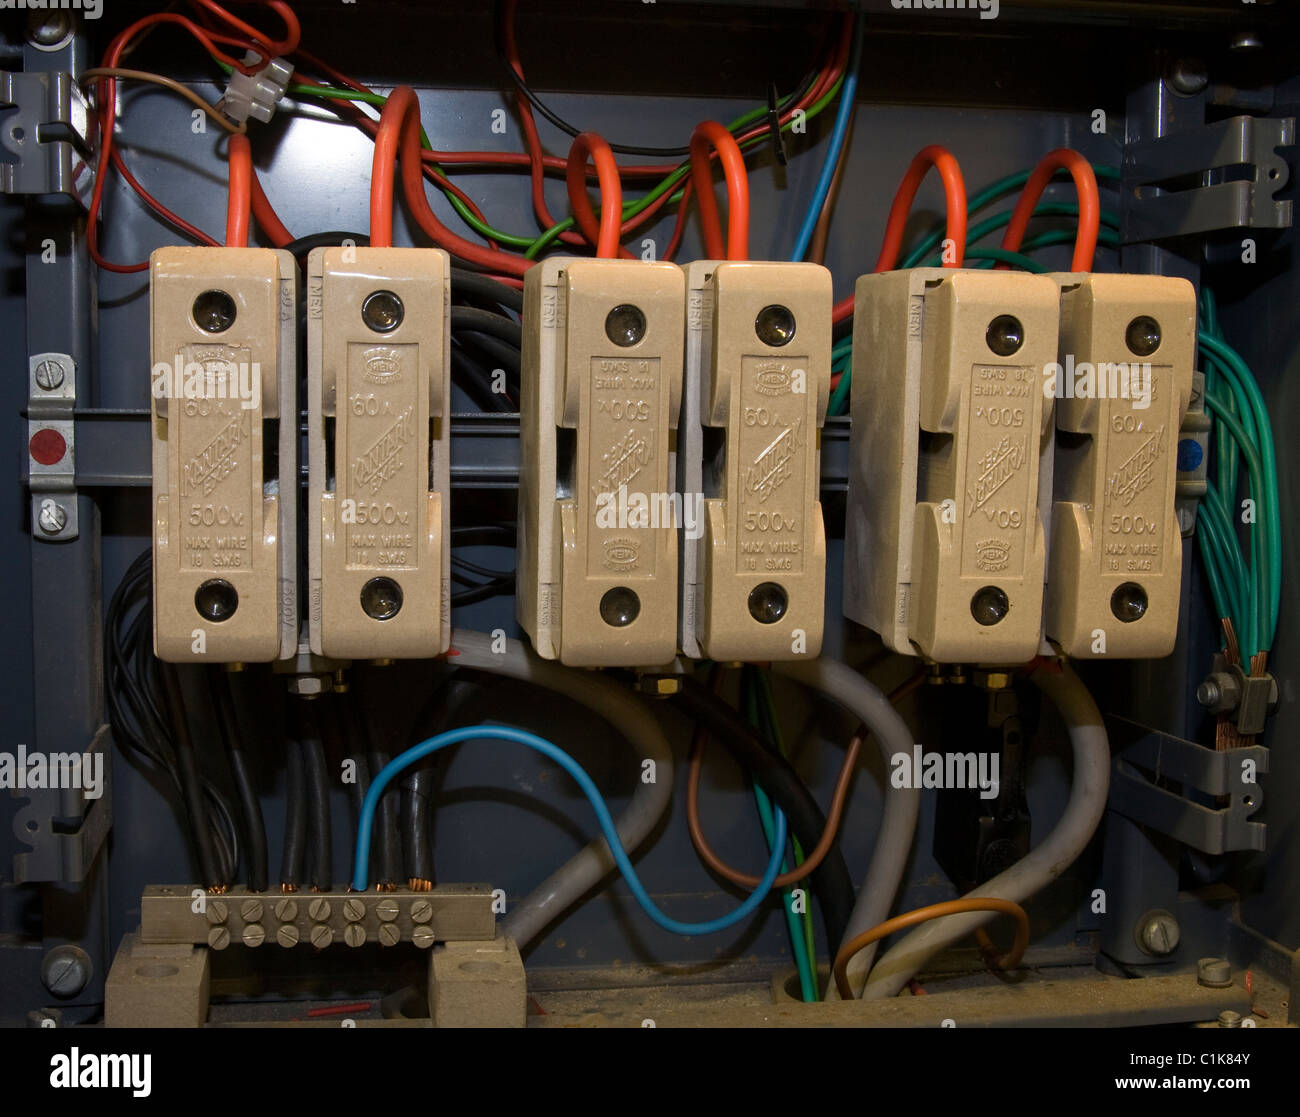 Wire Connector Terminal Block Stock Photos Ceramic Wiring Electricity Mains Fuse Old Type Domestic Connectors Board Image